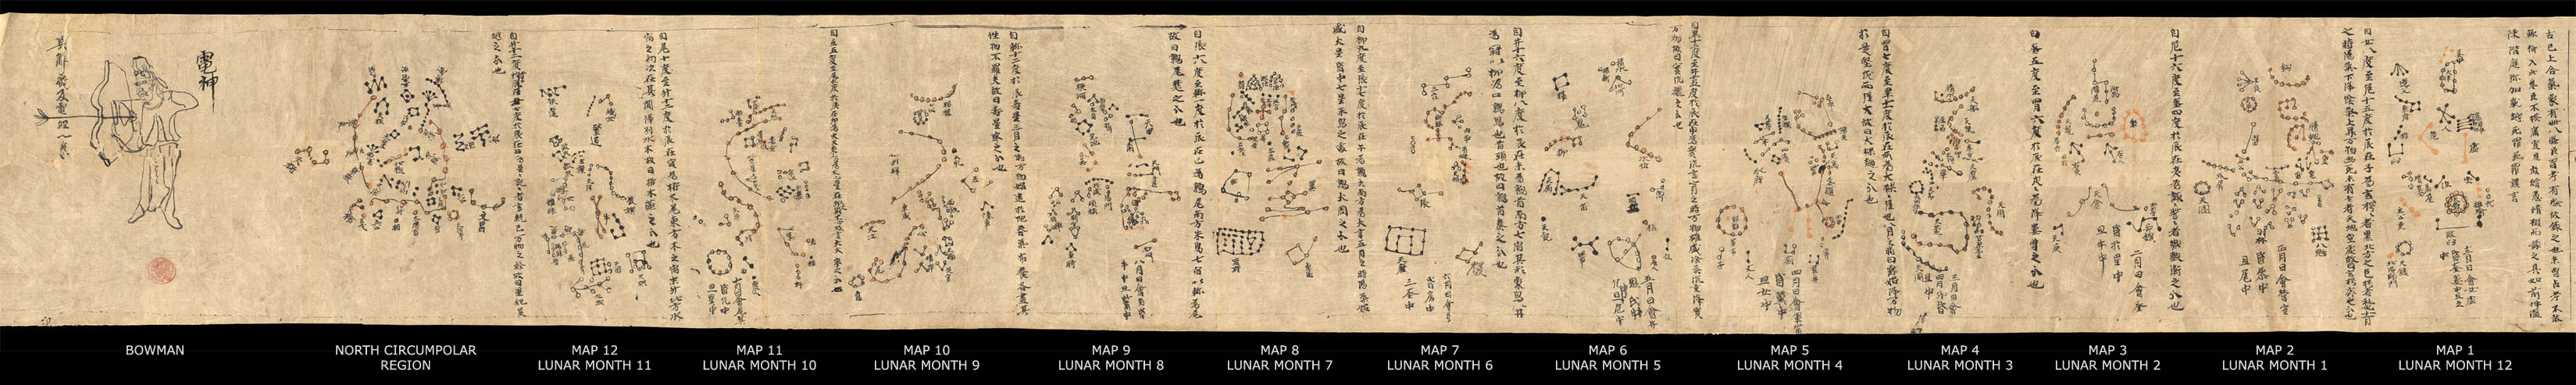 Or.8210/S.3326, The Dunhuang Star Chart